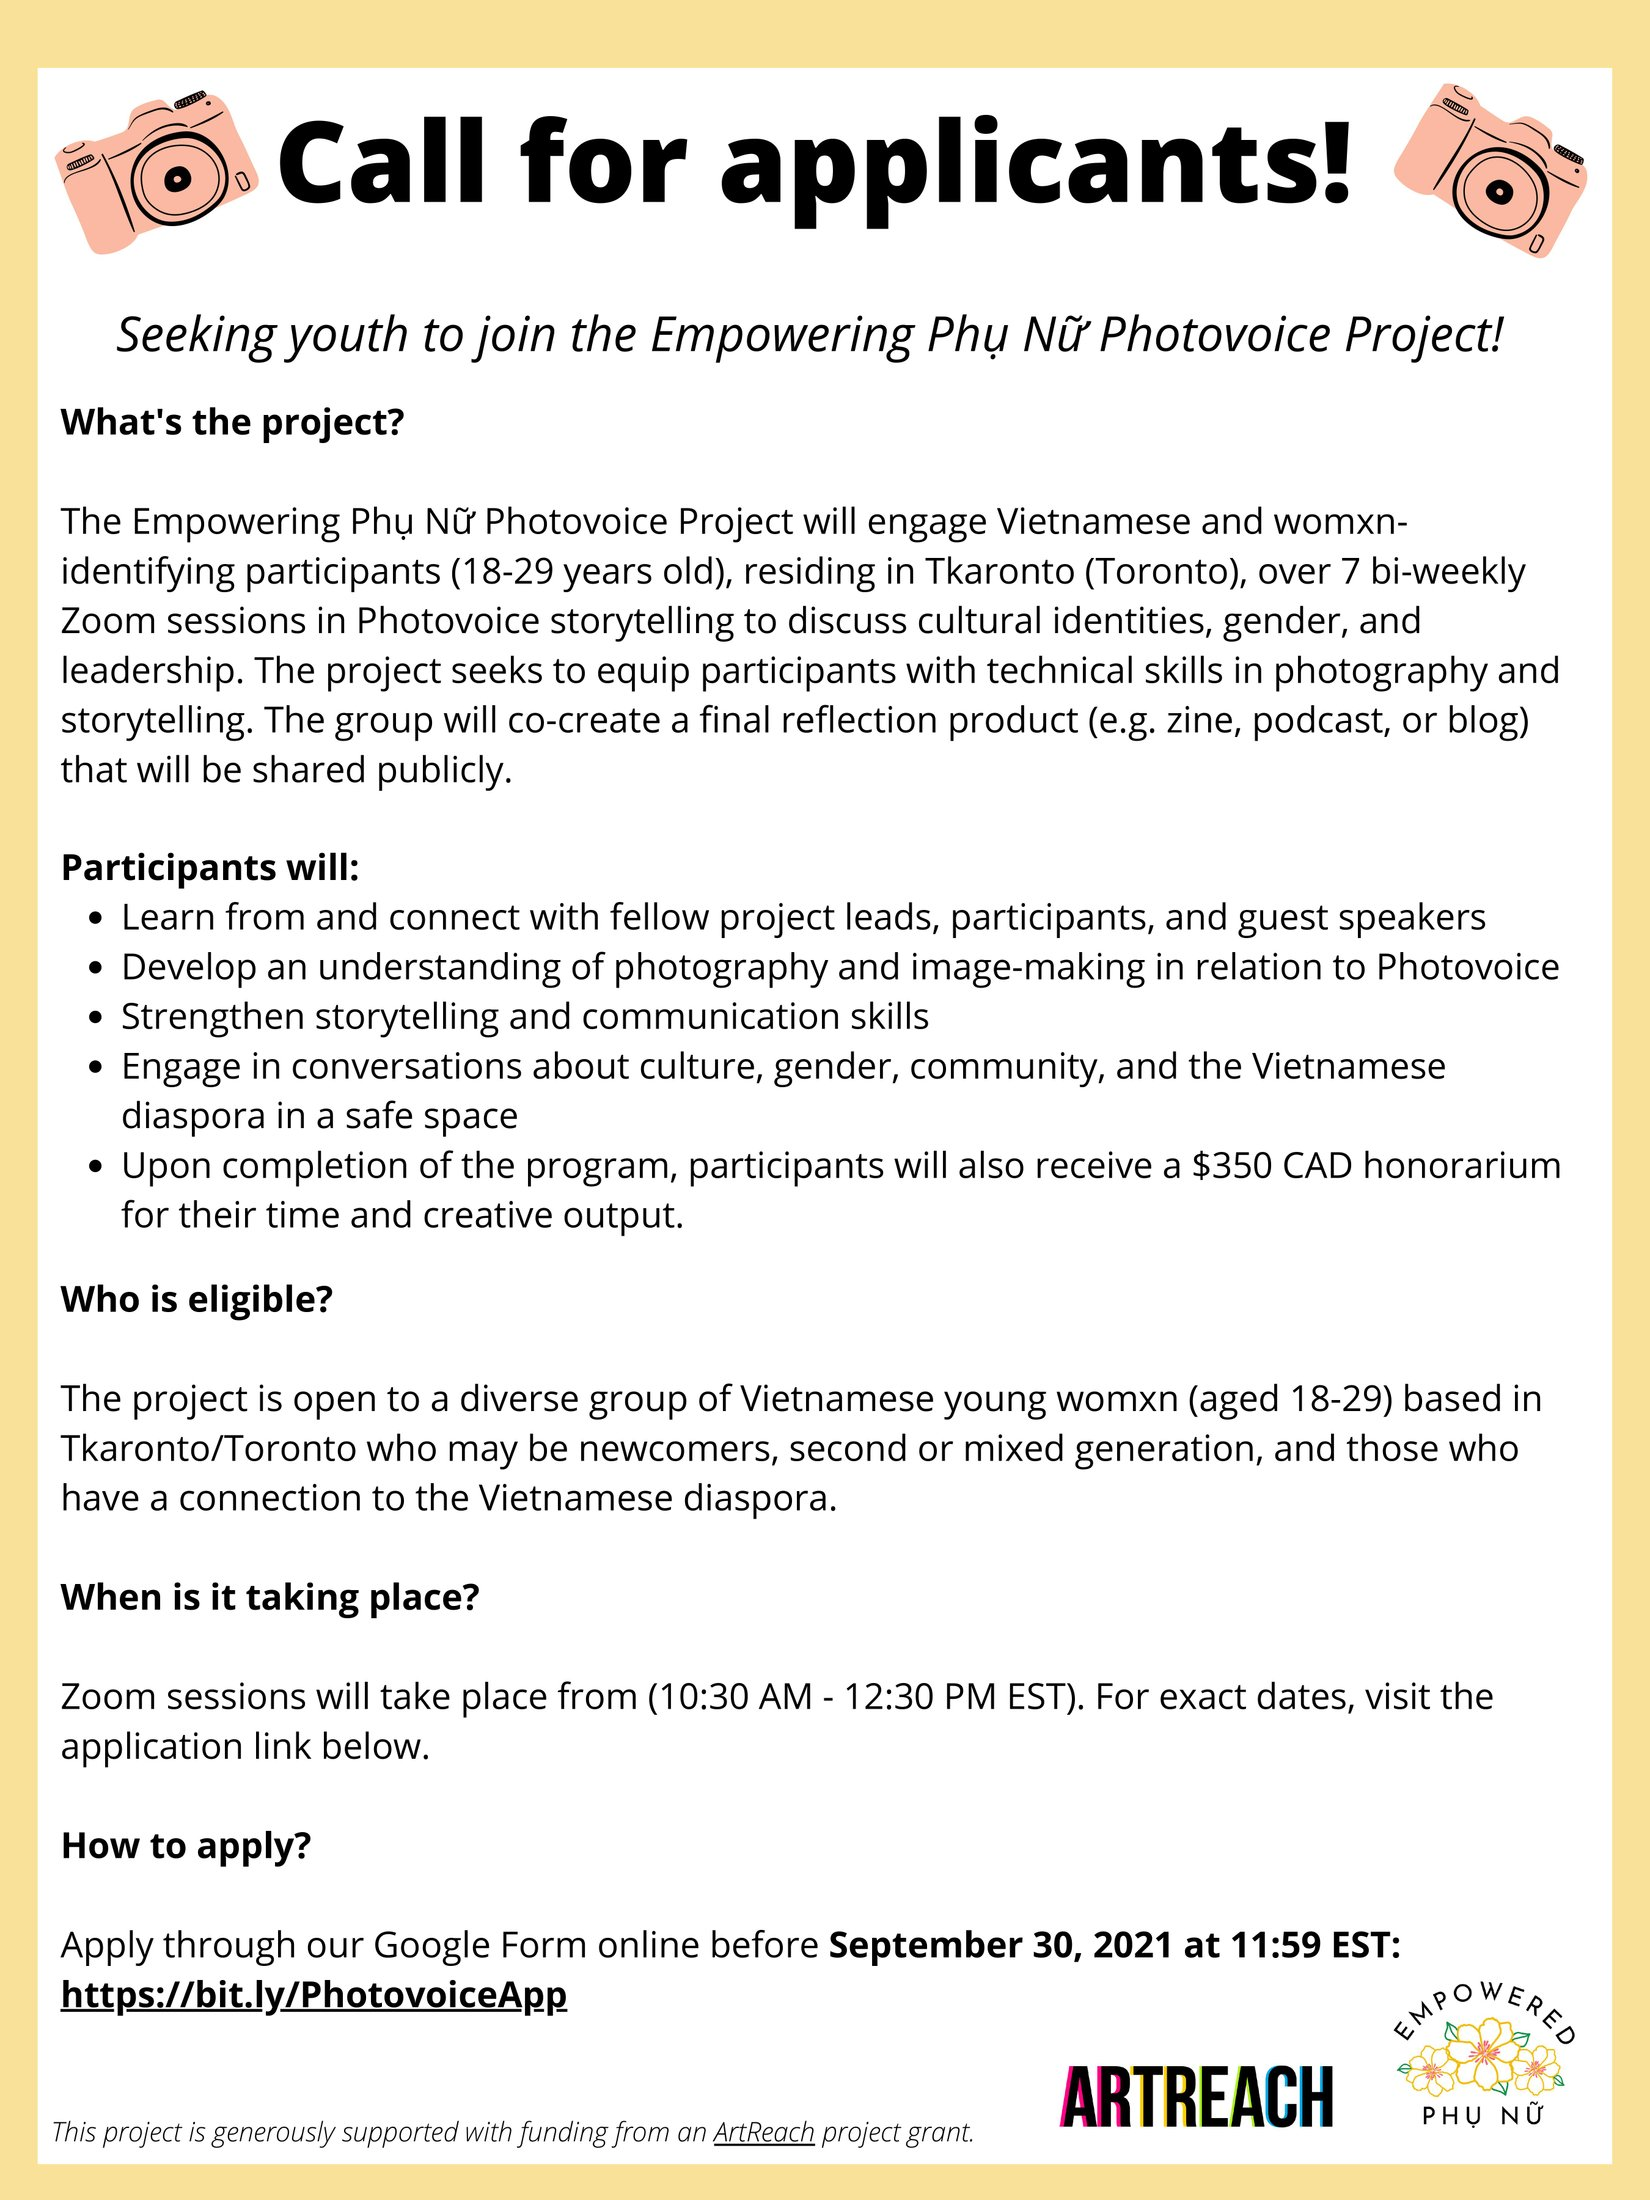 Empowering Phụ Nữ Photovoice Project poster